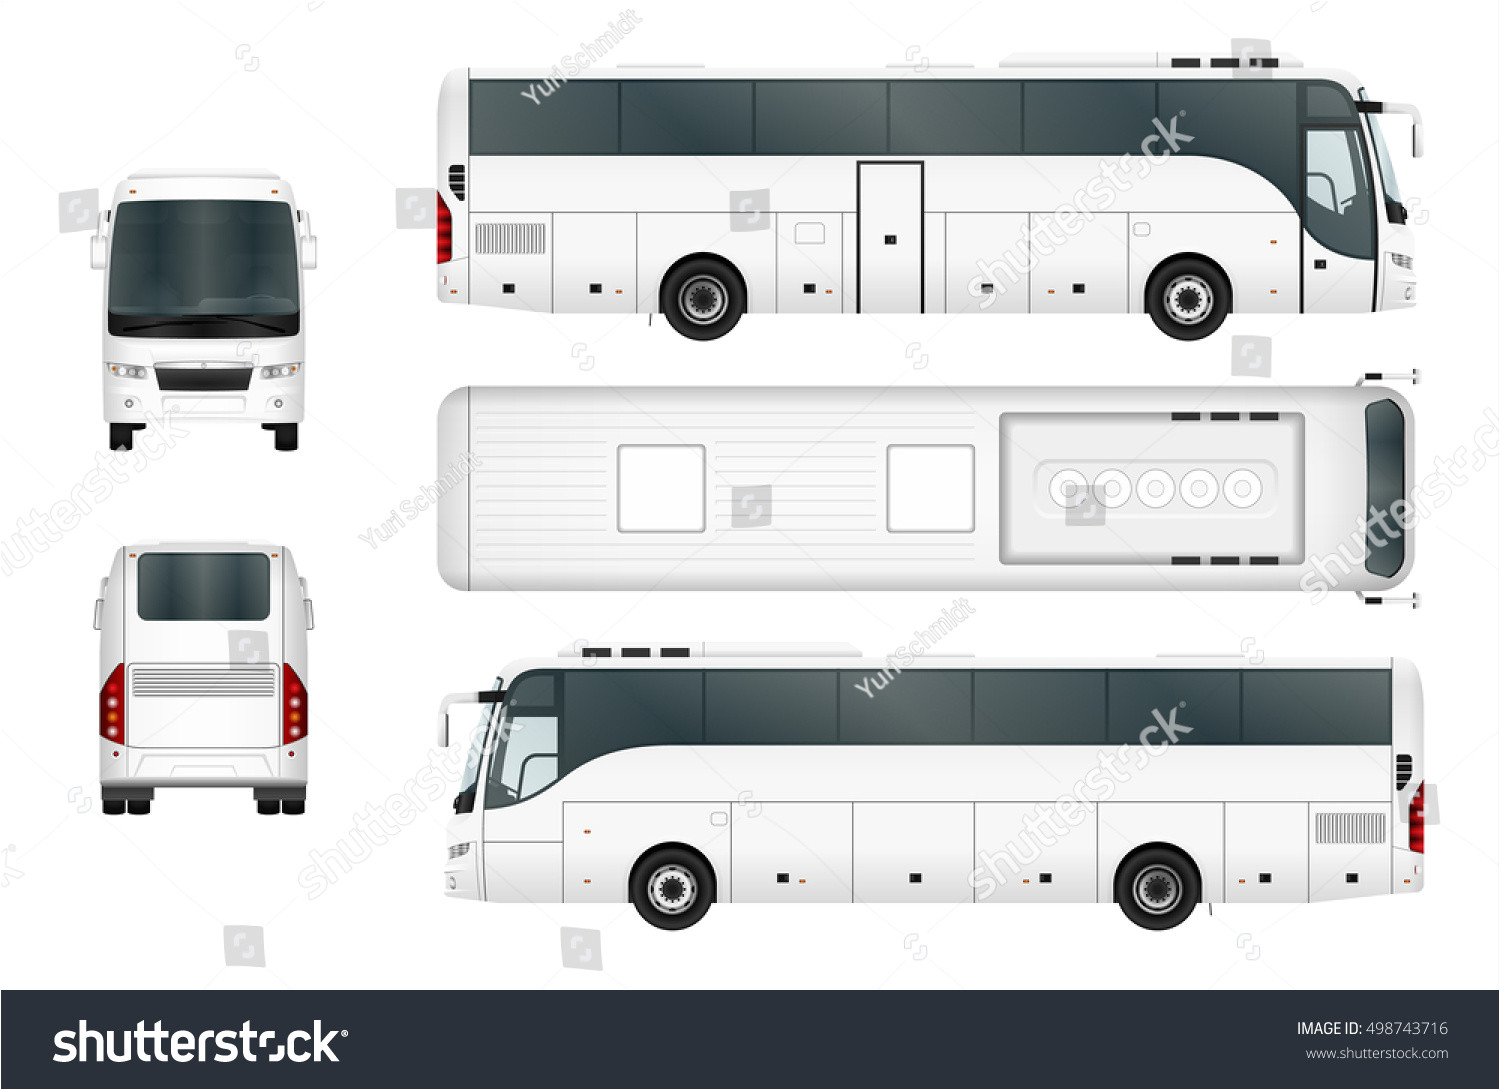 vector bus template isolated on white 498743716